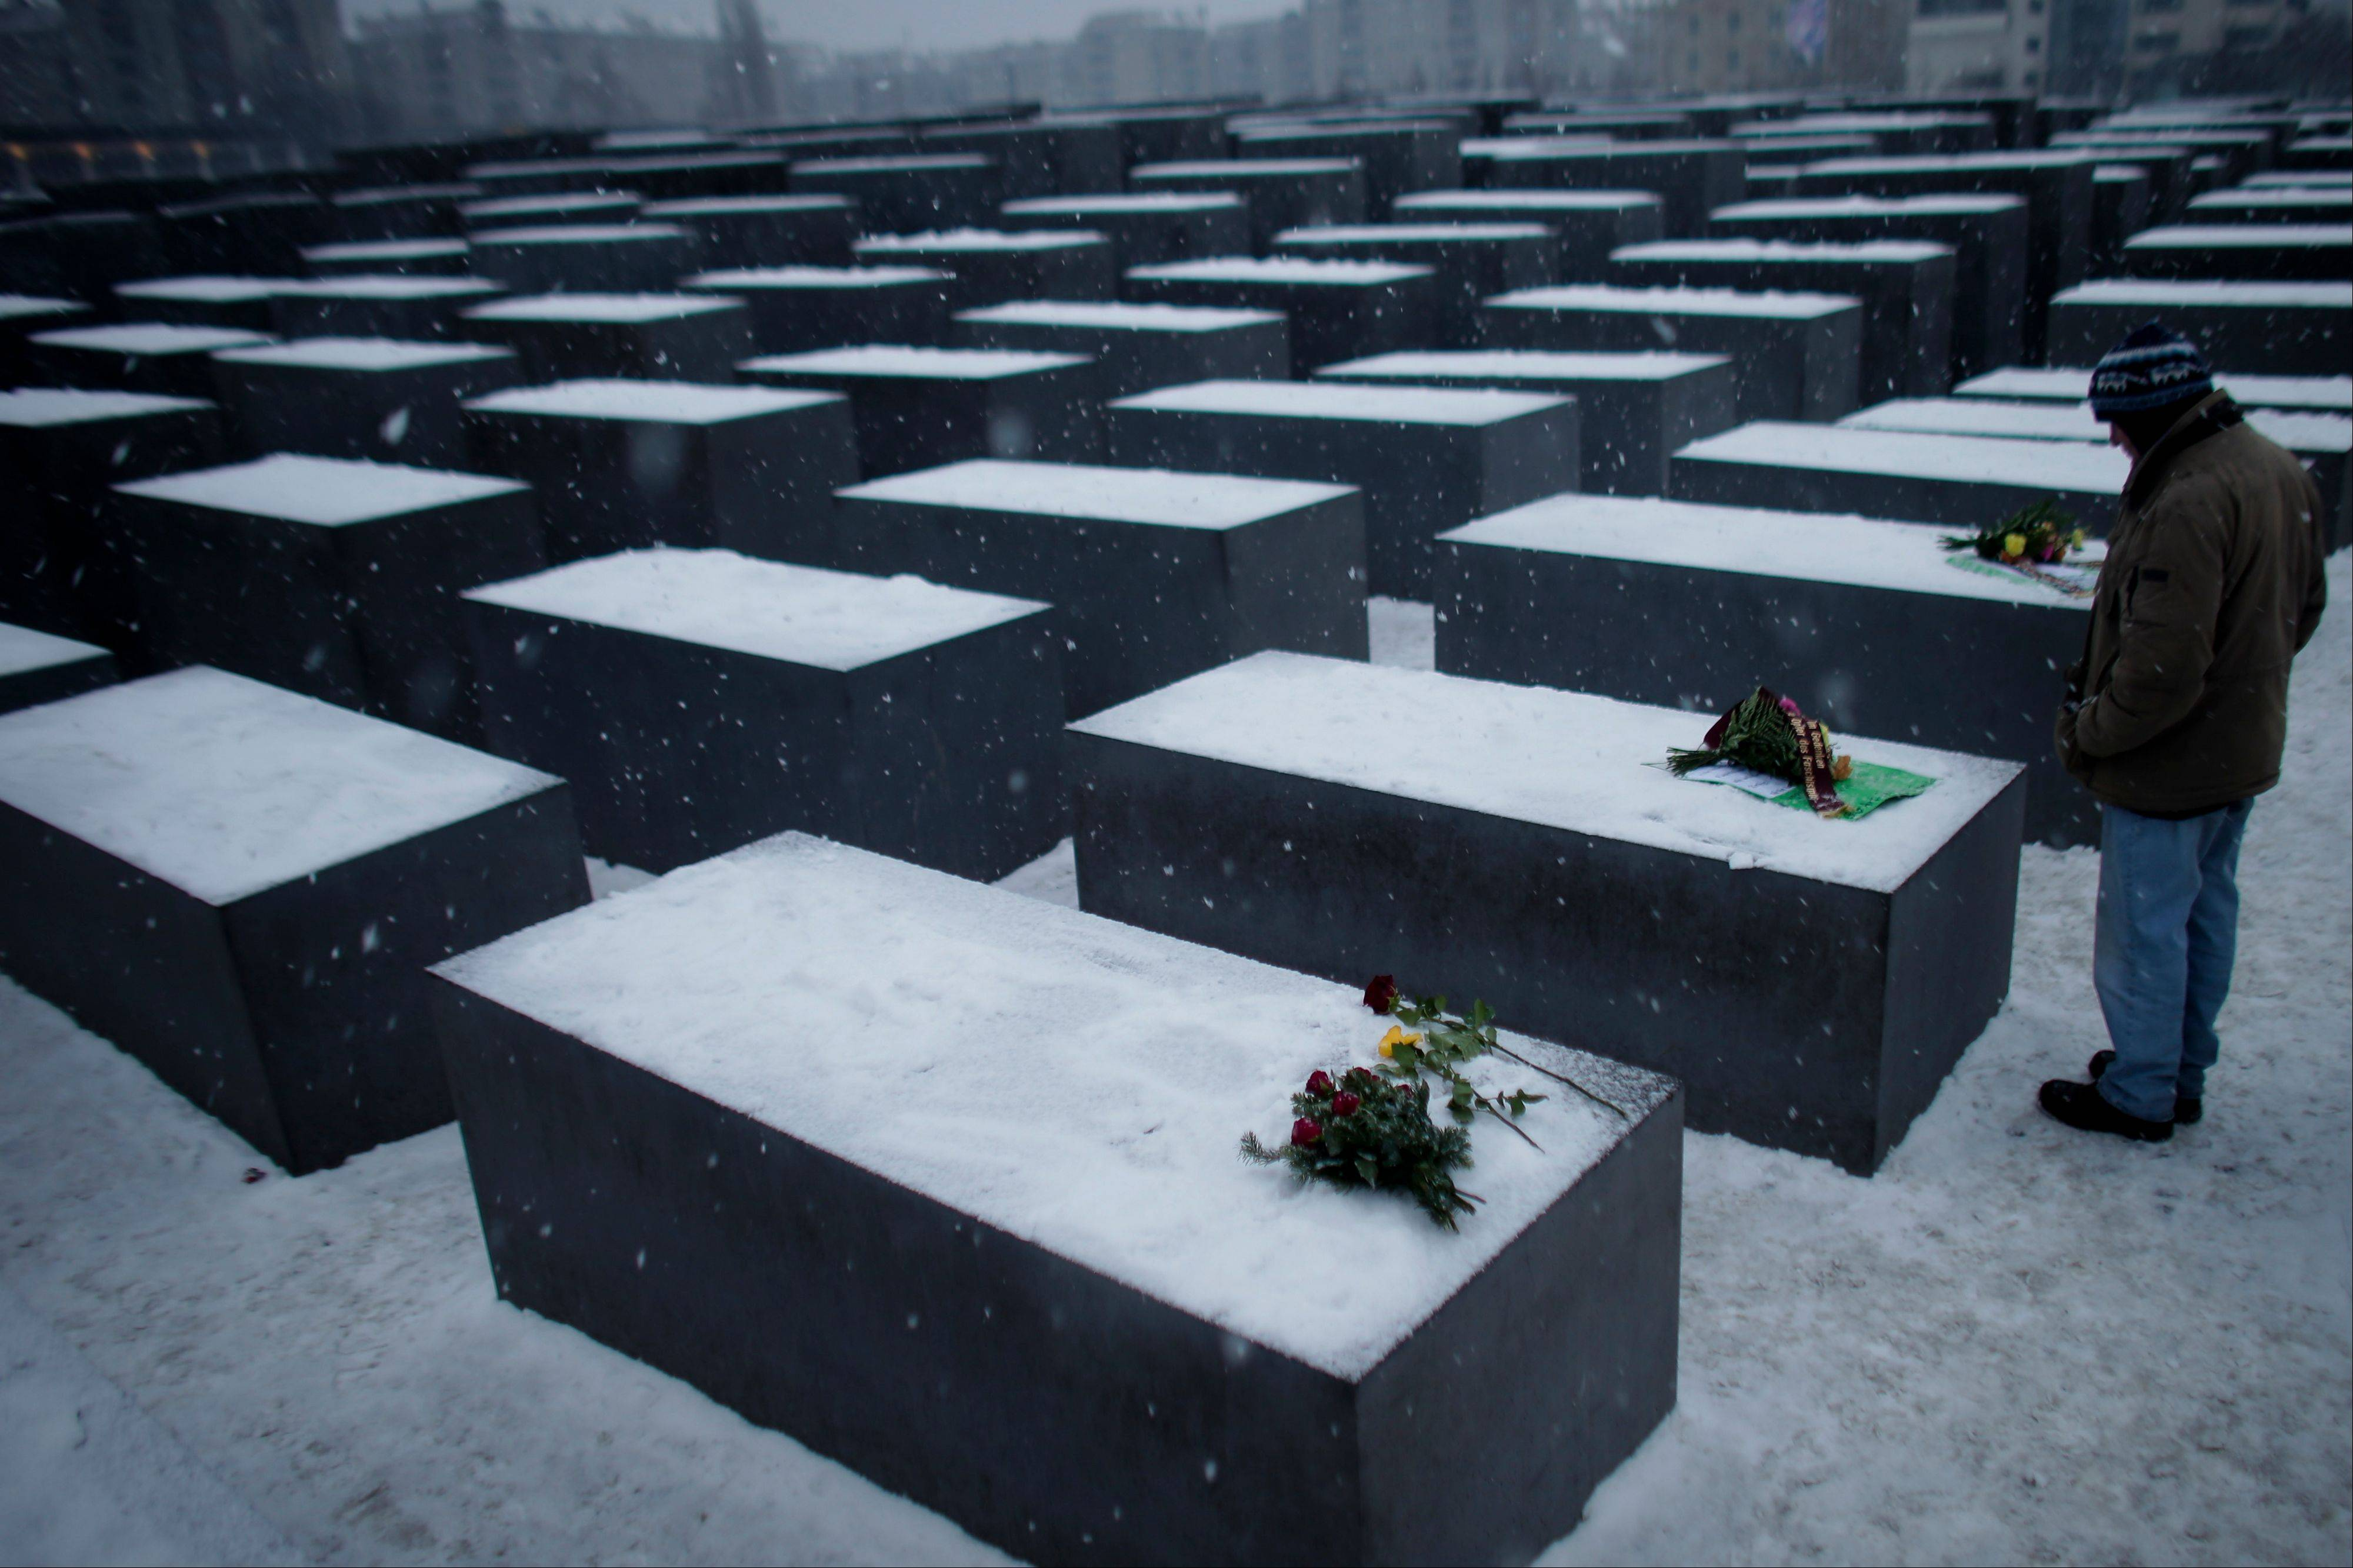 A man stands next to flowers on slabs of the Holocaust Memorial to commemorate the victims of the Nazi regime at the International Holocaust Remembrance Day in Berlin Sunday. The International Holocaust Remembrance Day marks the liberation of the Auschwitz death camp on Jan. 27, 1945.